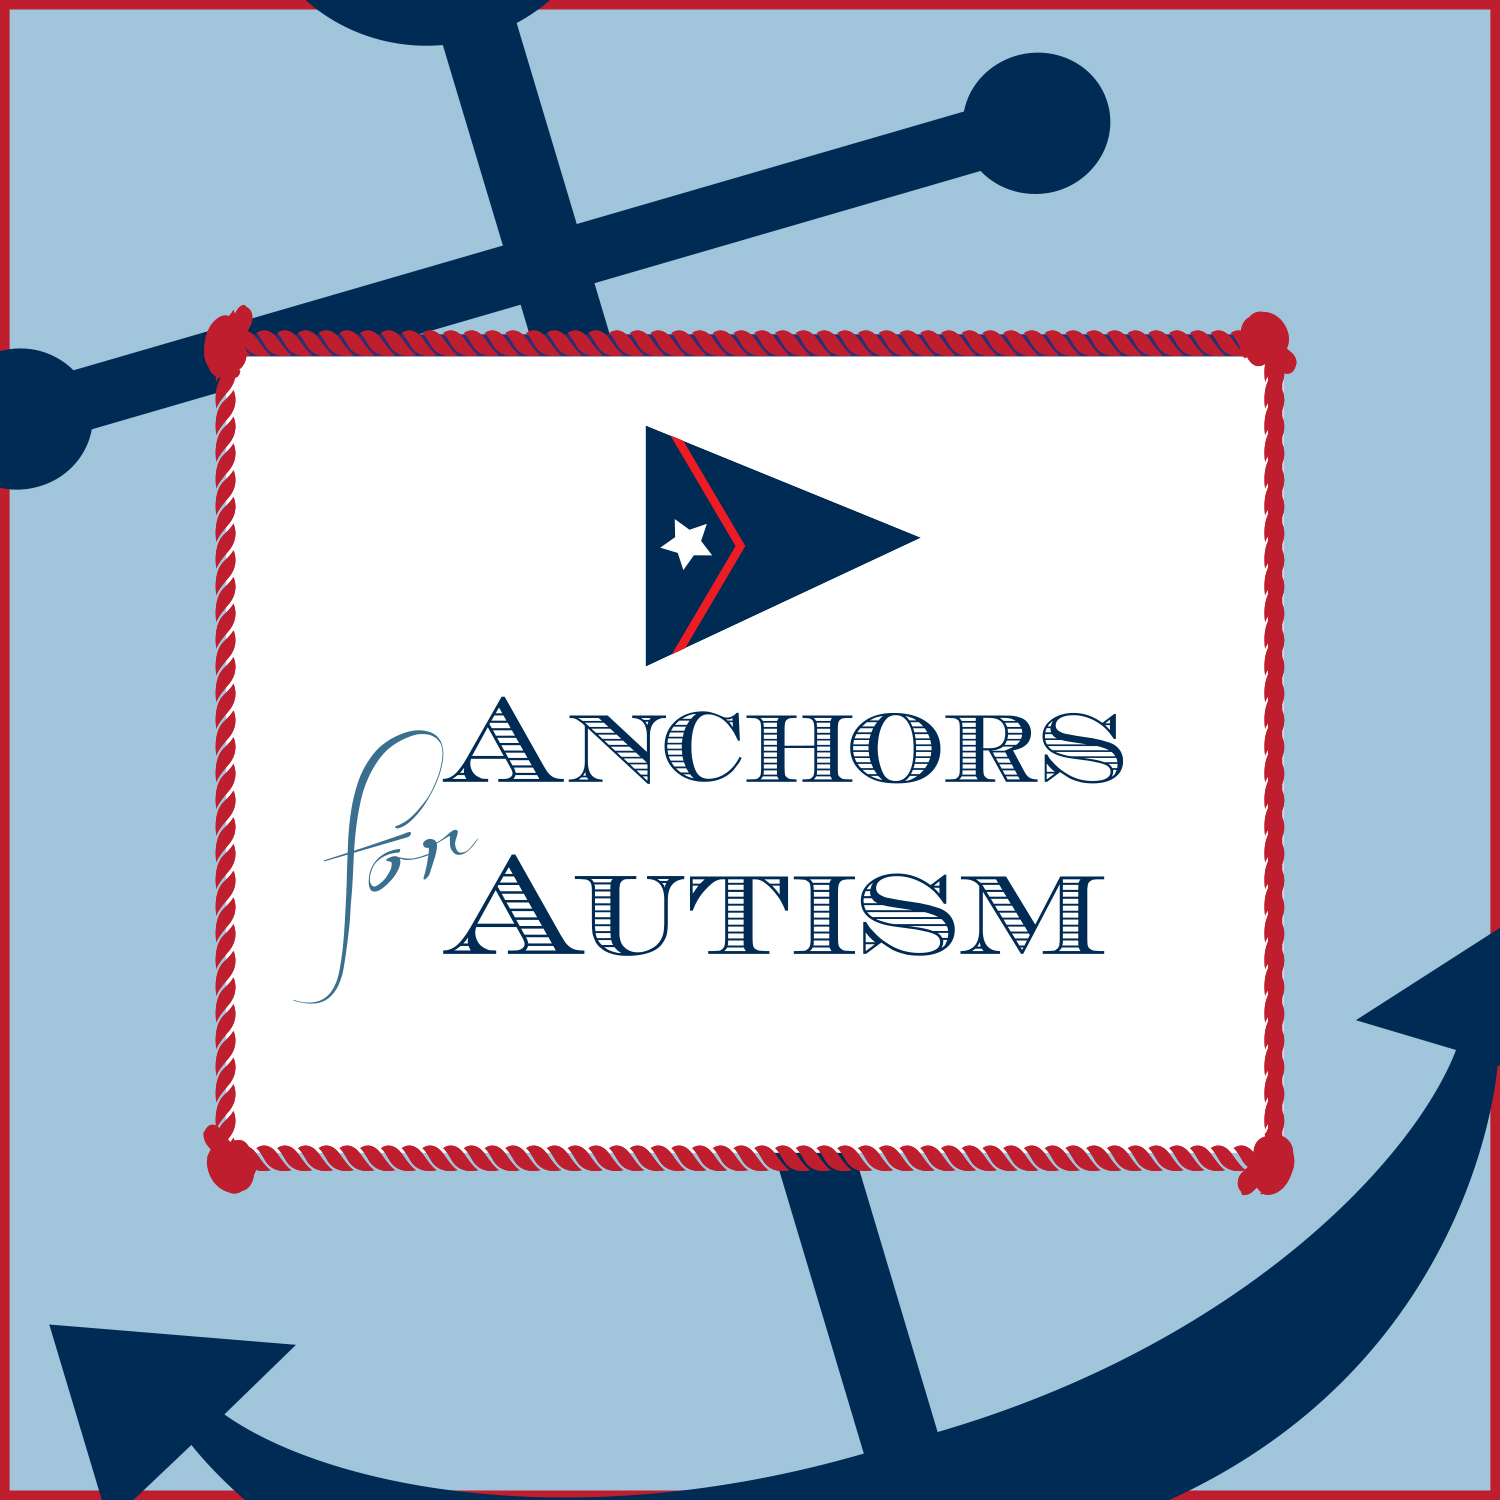 Anchors for Autism: PWYC Charity Cup Regatta is September 13, 2014